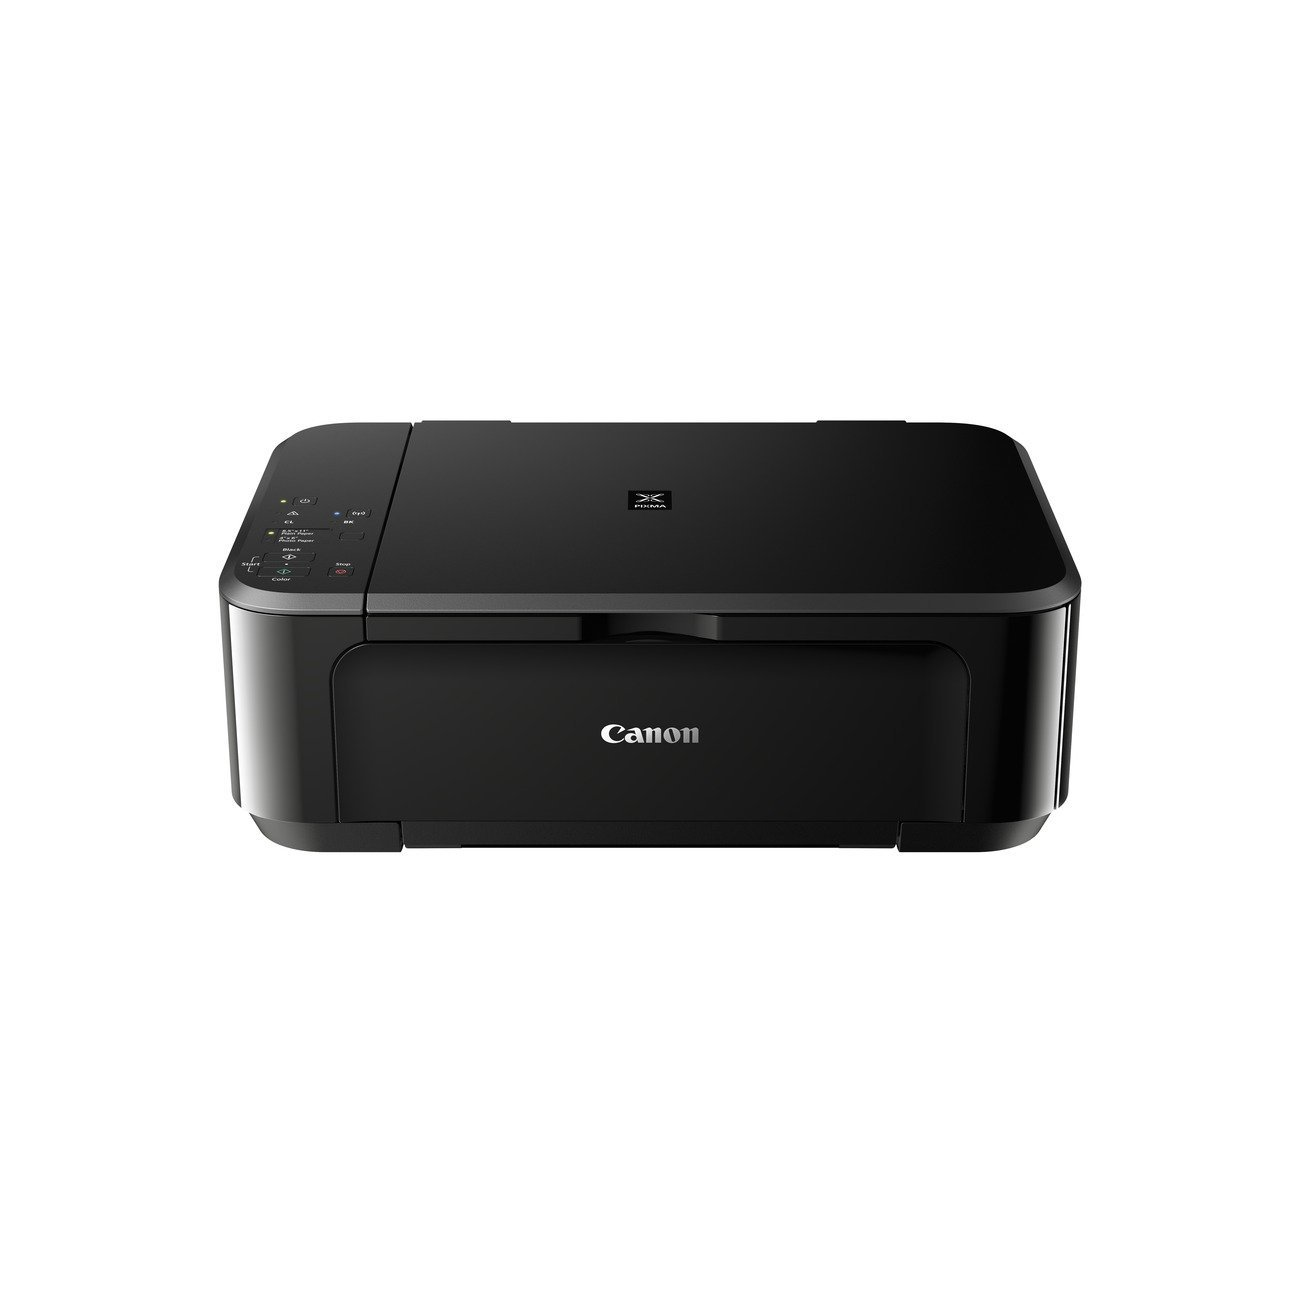 Canon Mg3650 Download Driver Canon Pixma Mg3650 Printer And Scanner Support